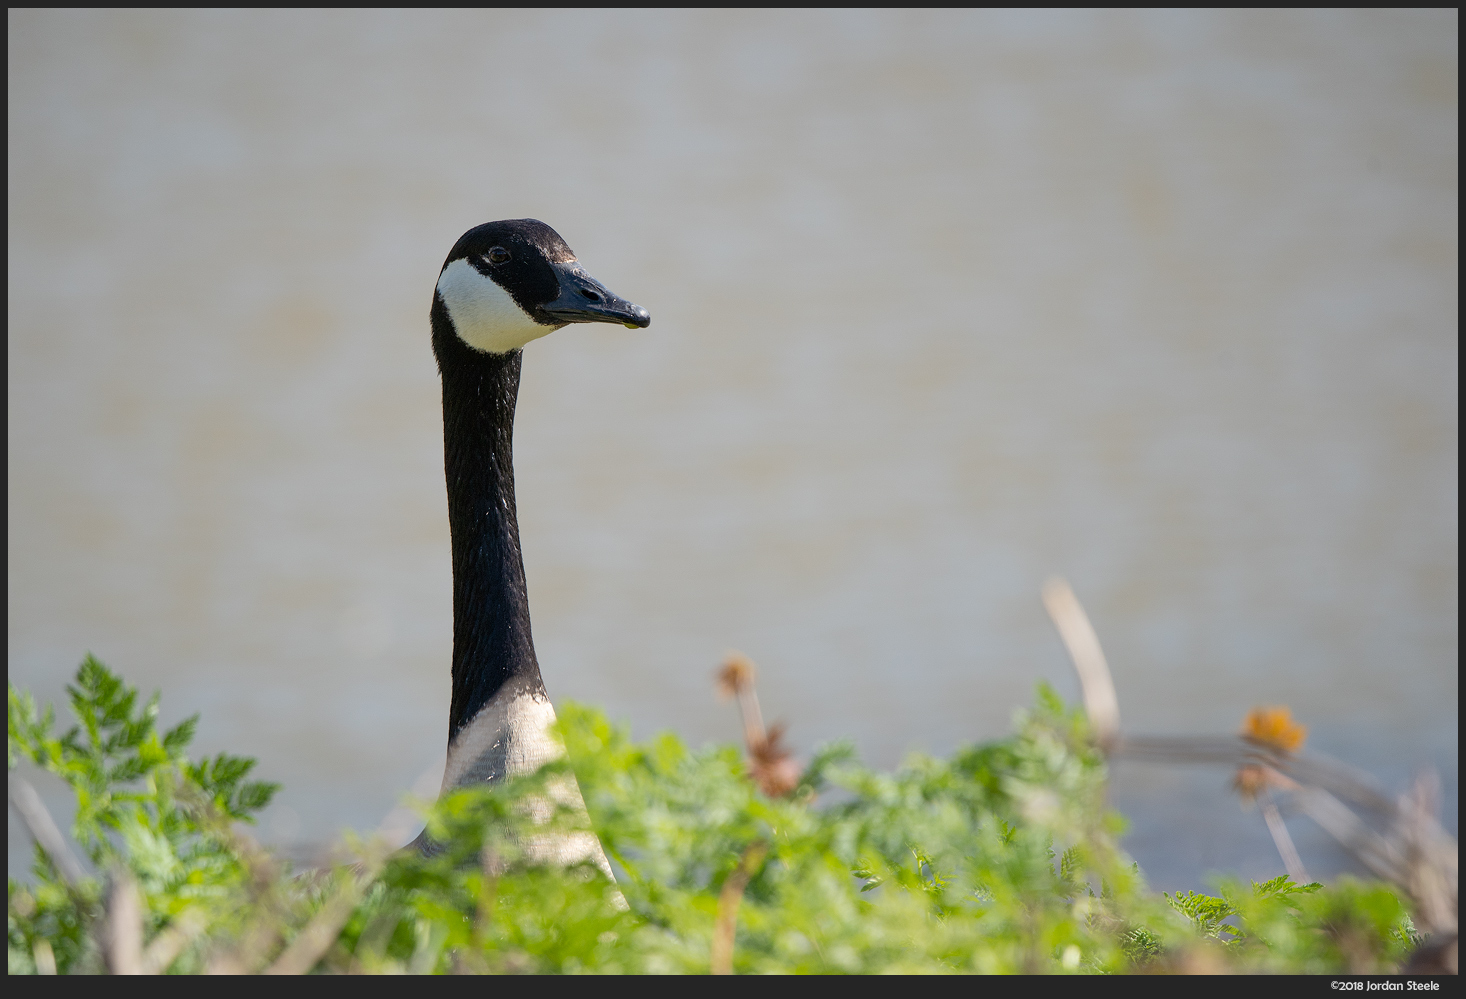 Goose - Sony A7 III with Sigma 100-400mm f/5-6.3 @ 400mm, f/6.3